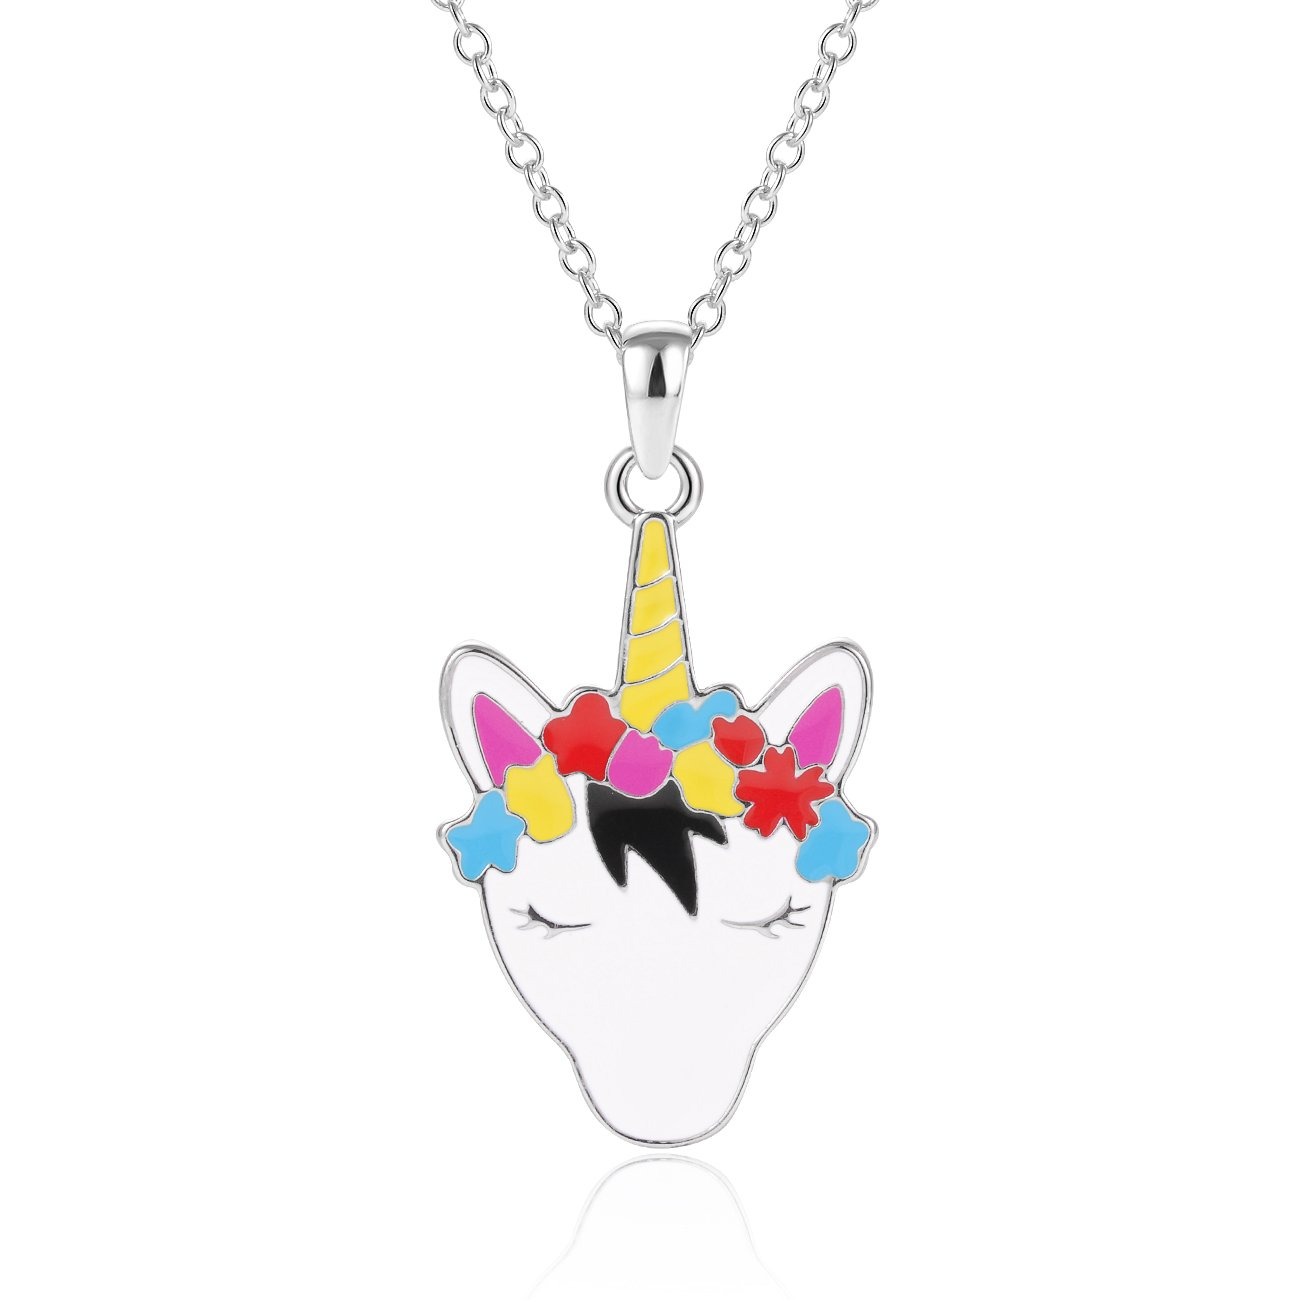 KINGSIN Sliver Unicorn Necklace for Girls Women Colors Enamel Unicorn Pendant Jewelry Birthday Gifts for Kids